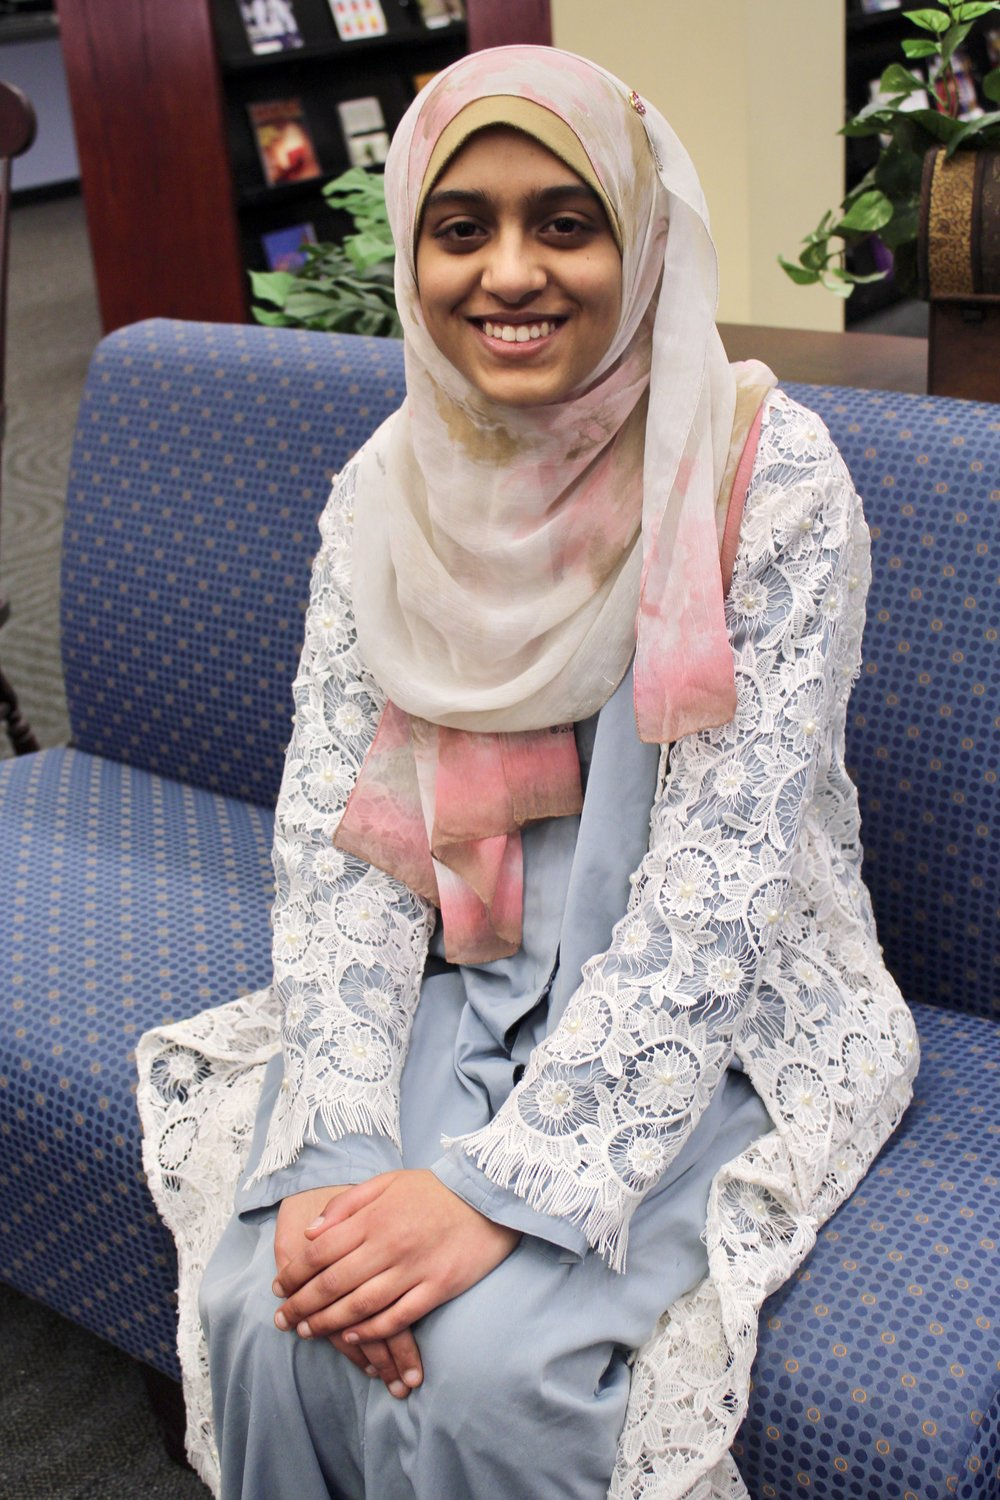 Photo by Abby Robb   EC Freshman Syeda Sameeha is elected to serve as the Editor-in-Chief of The Leader for the 2018-19 school year.